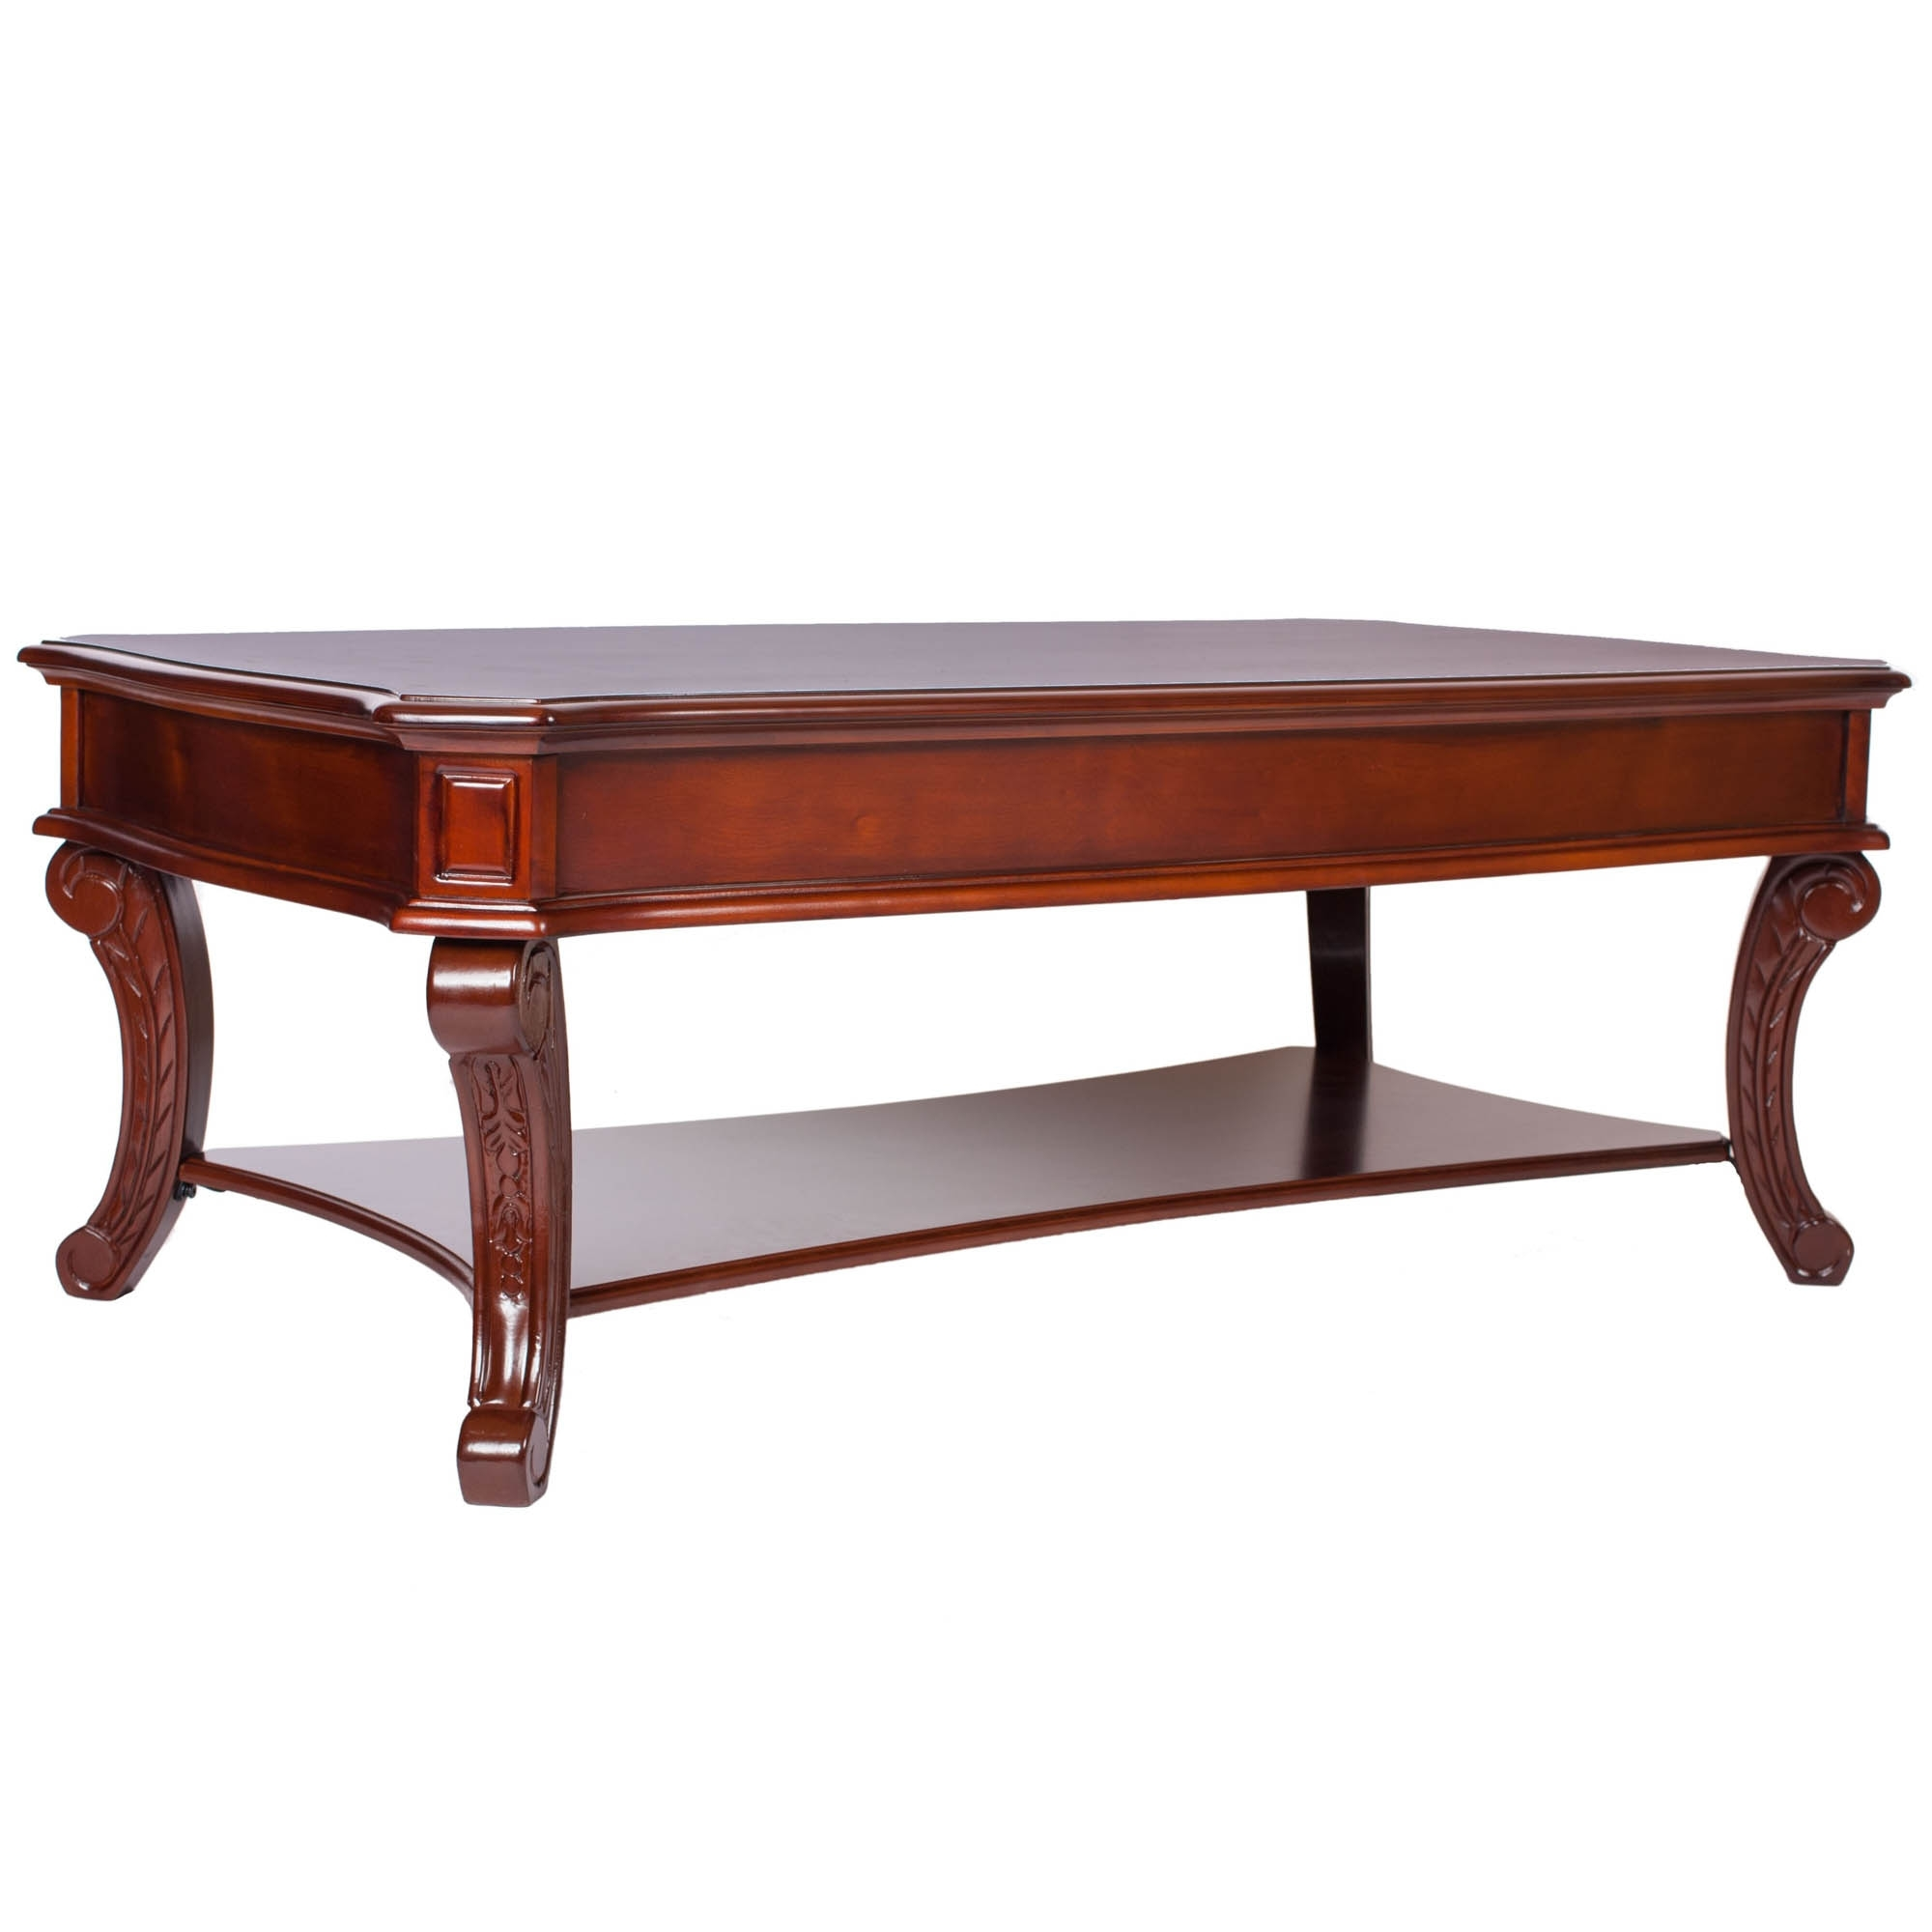 Aston antique french style coffee table coffee table Vogue coffee table